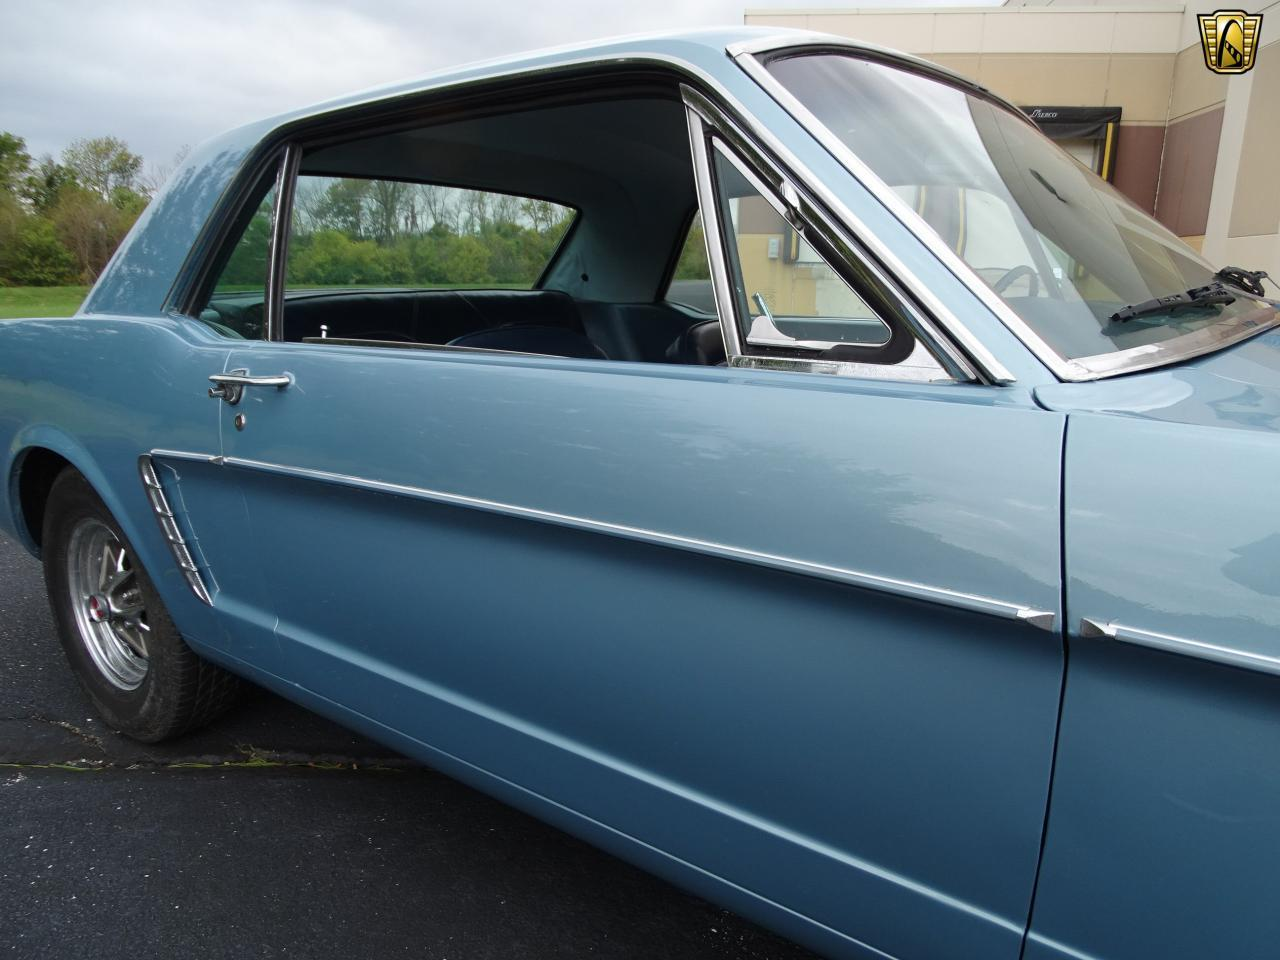 Large Picture of 1965 Mustang located in O'Fallon Illinois - $16,995.00 - KDUO